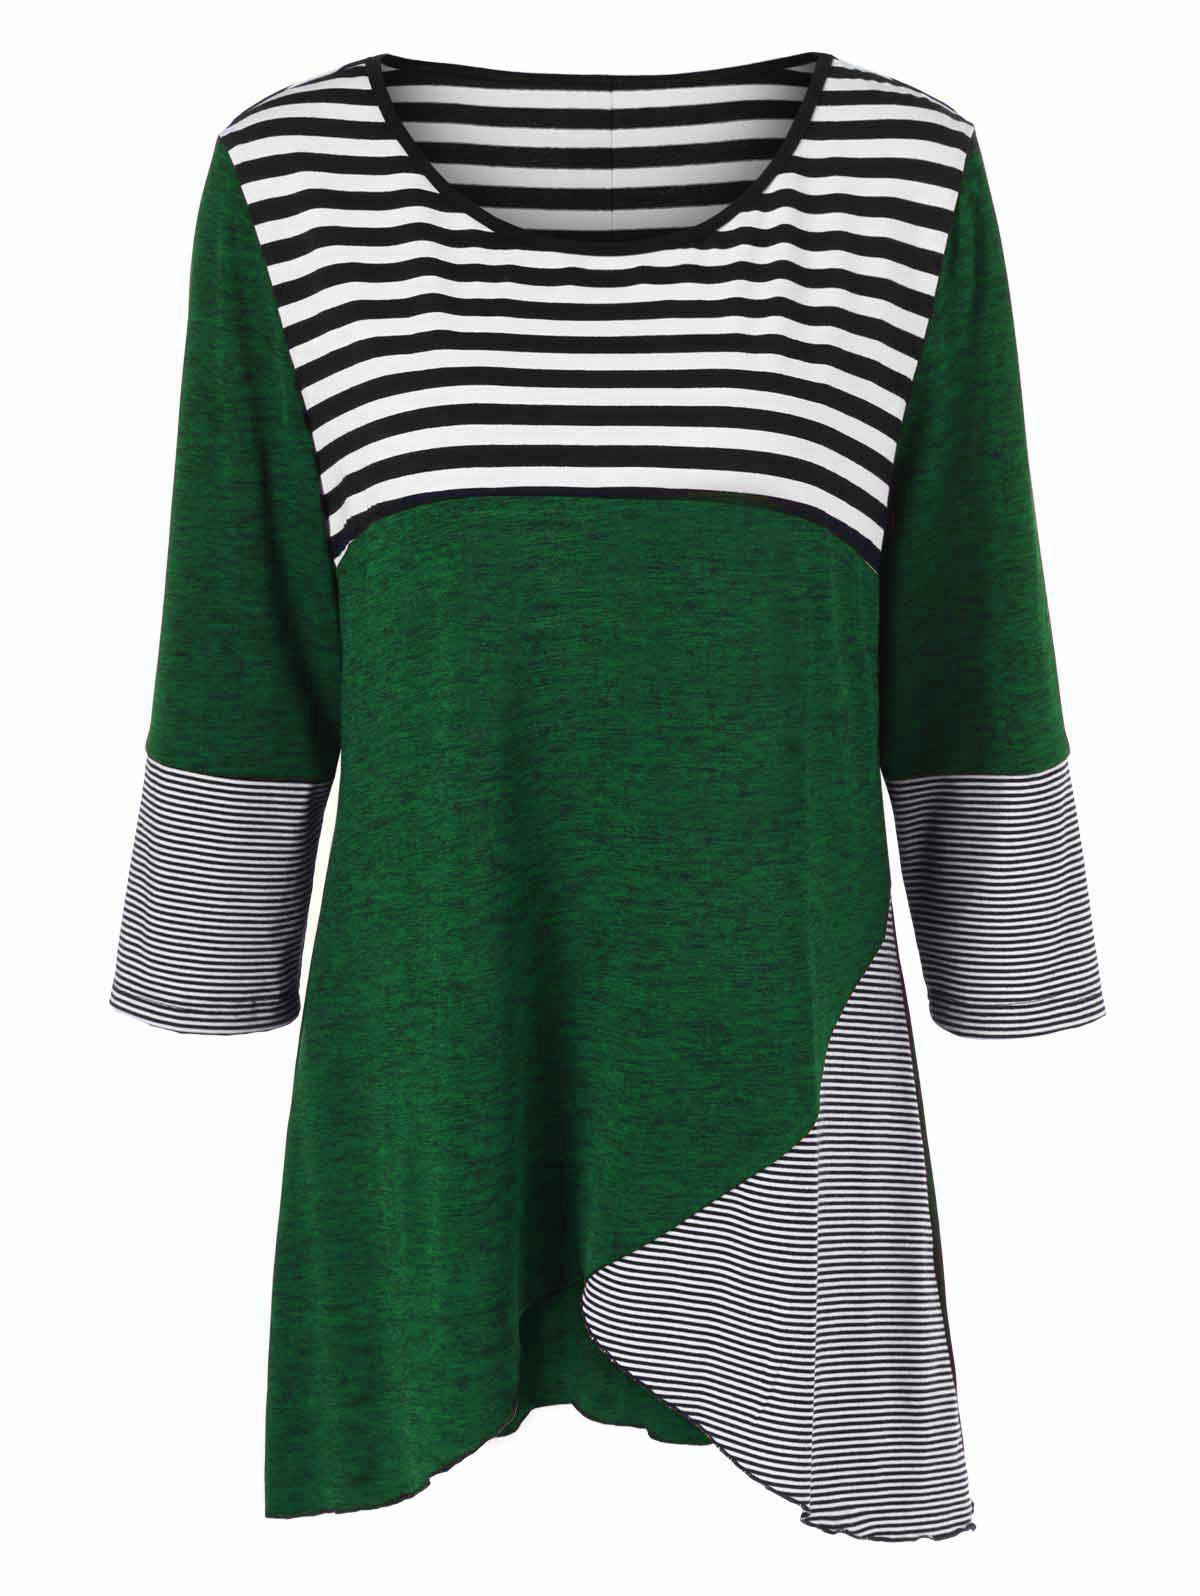 Plus Size Striped Tunic T-ShirtWOMEN<br><br>Size: 3XL; Color: GREEN; Material: Polyester,Spandex; Shirt Length: Long; Sleeve Length: Three Quarter; Collar: Scoop Neck; Style: Casual; Season: Fall,Spring; Pattern Type: Striped; Weight: 0.3800kg; Package Contents: 1 x T-Shirt;